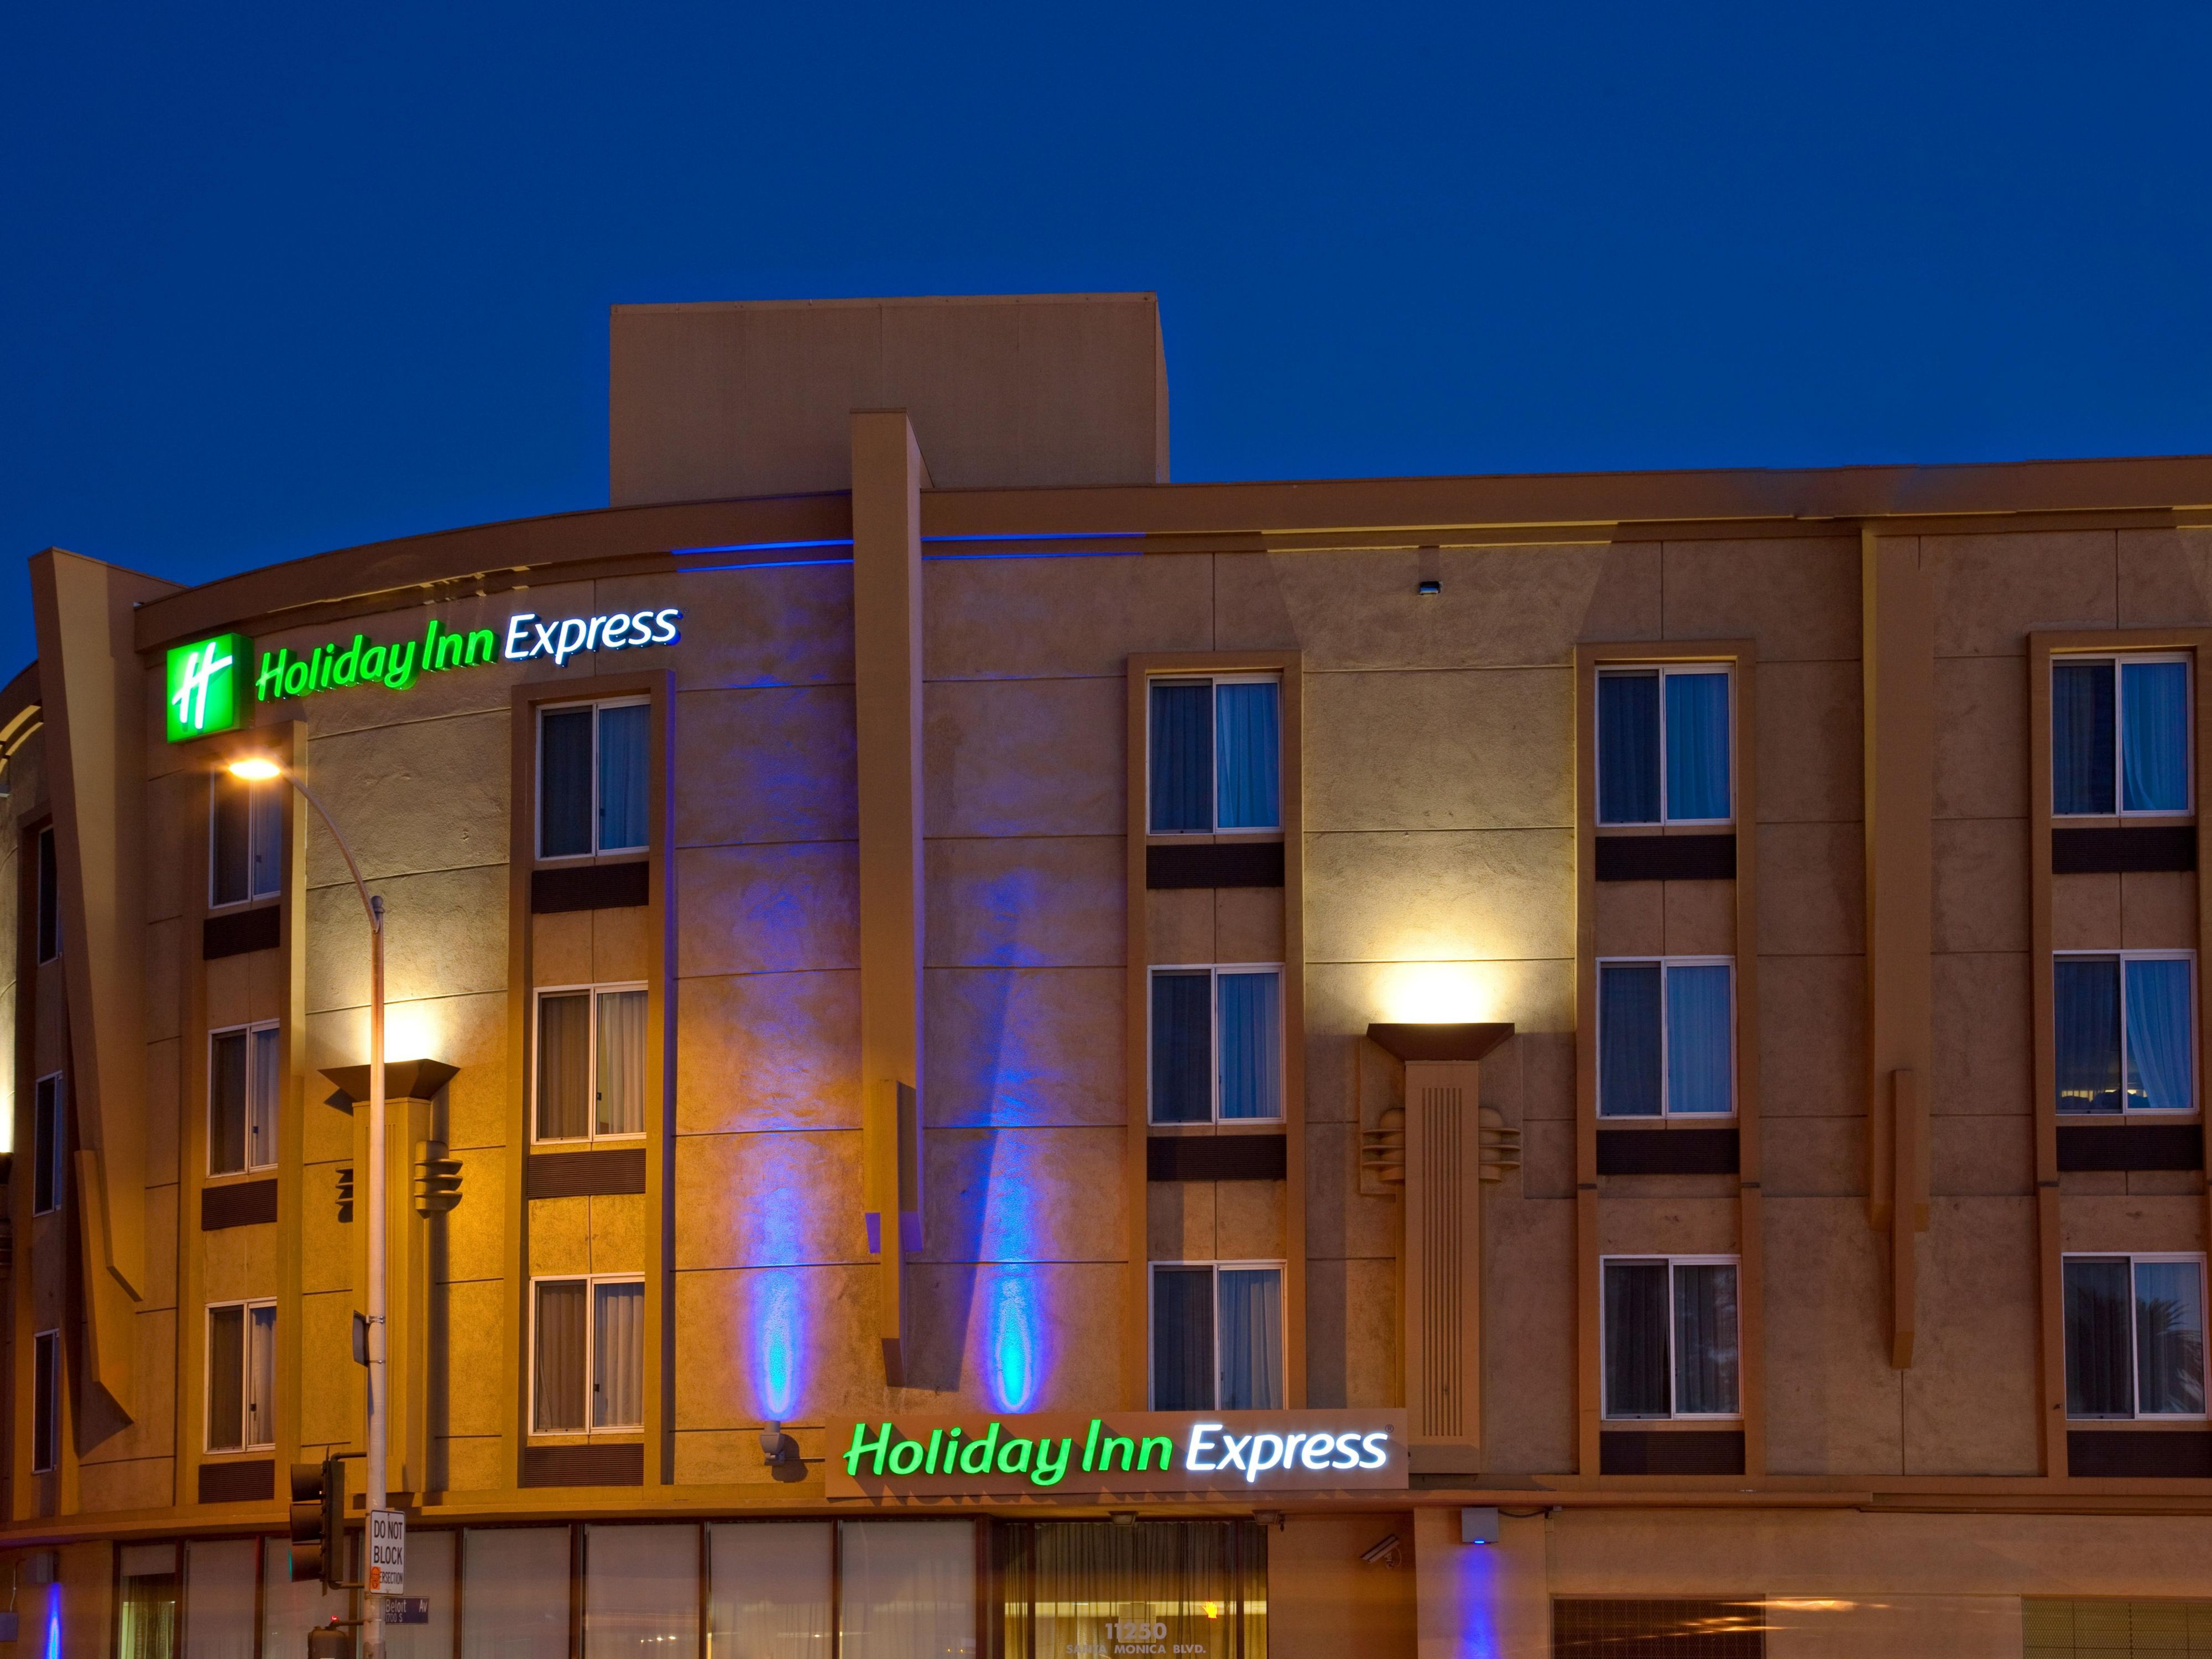 Holiday Inn Express West Los Angeles Hotel Exterior